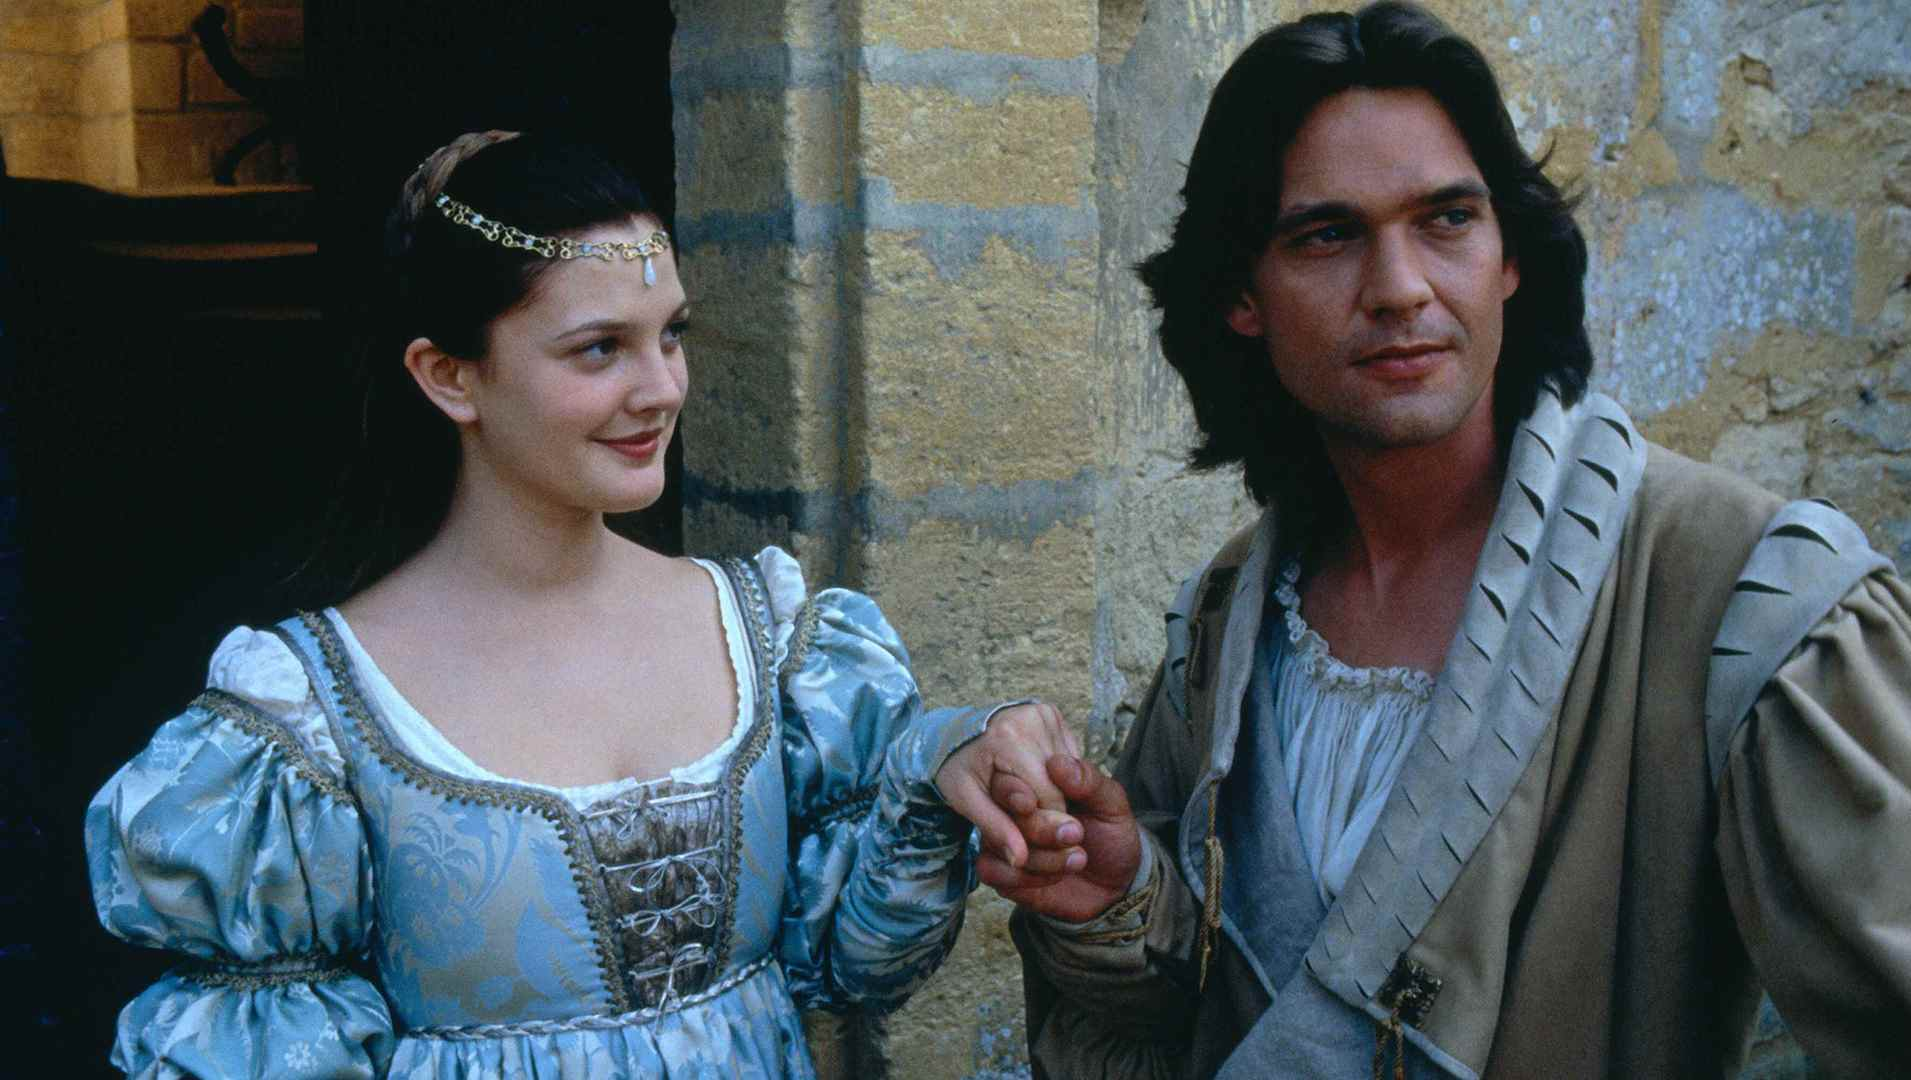 Drew Barrymore as Danielle and Dougray Scott as Prince Henry in EverAfter (1998)